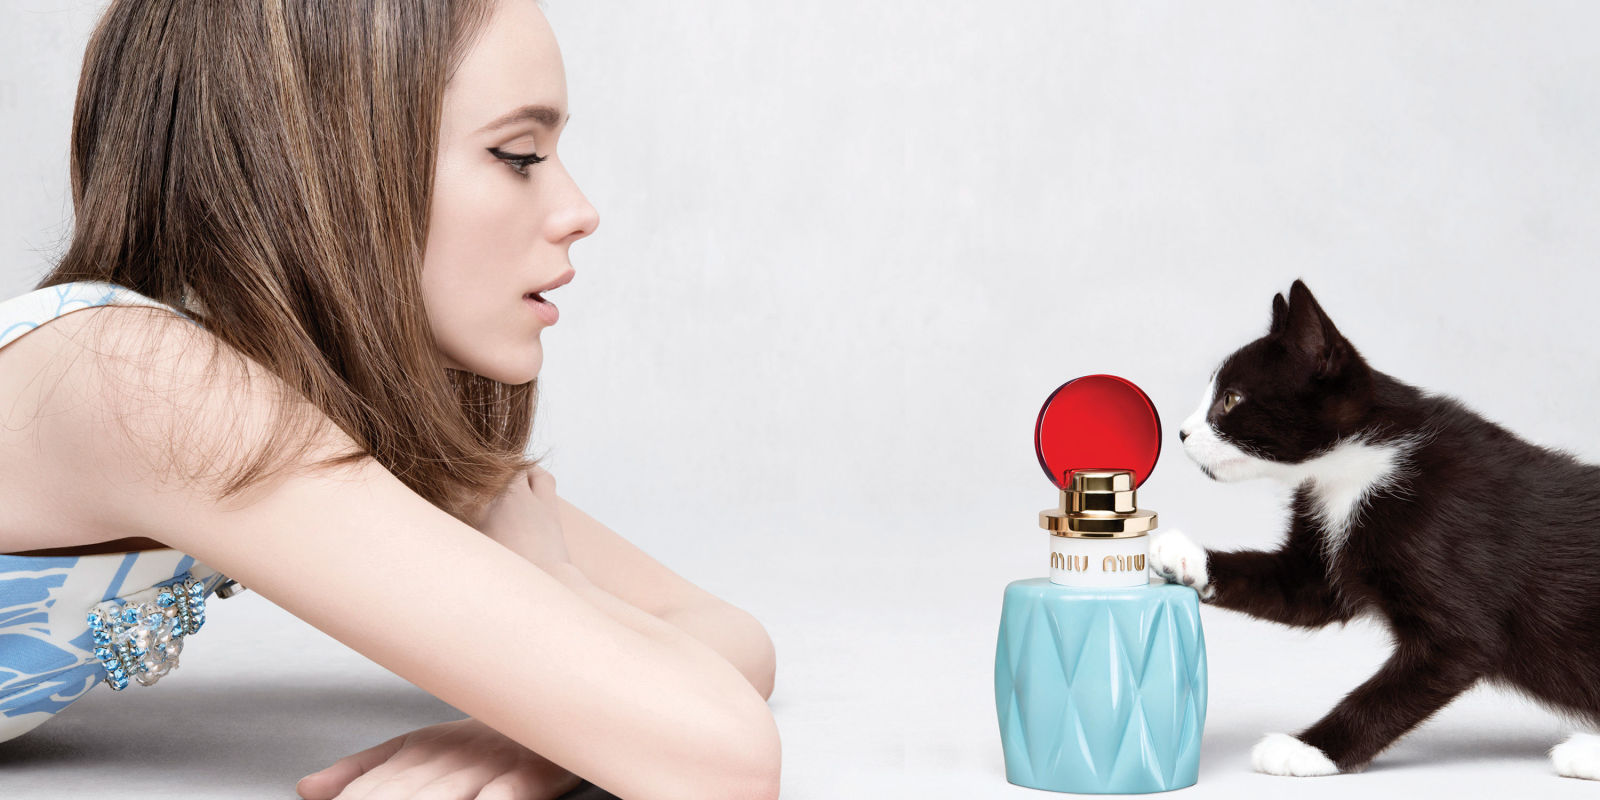 Stacy martin miu miu fragrance campaign stacy martin beauty